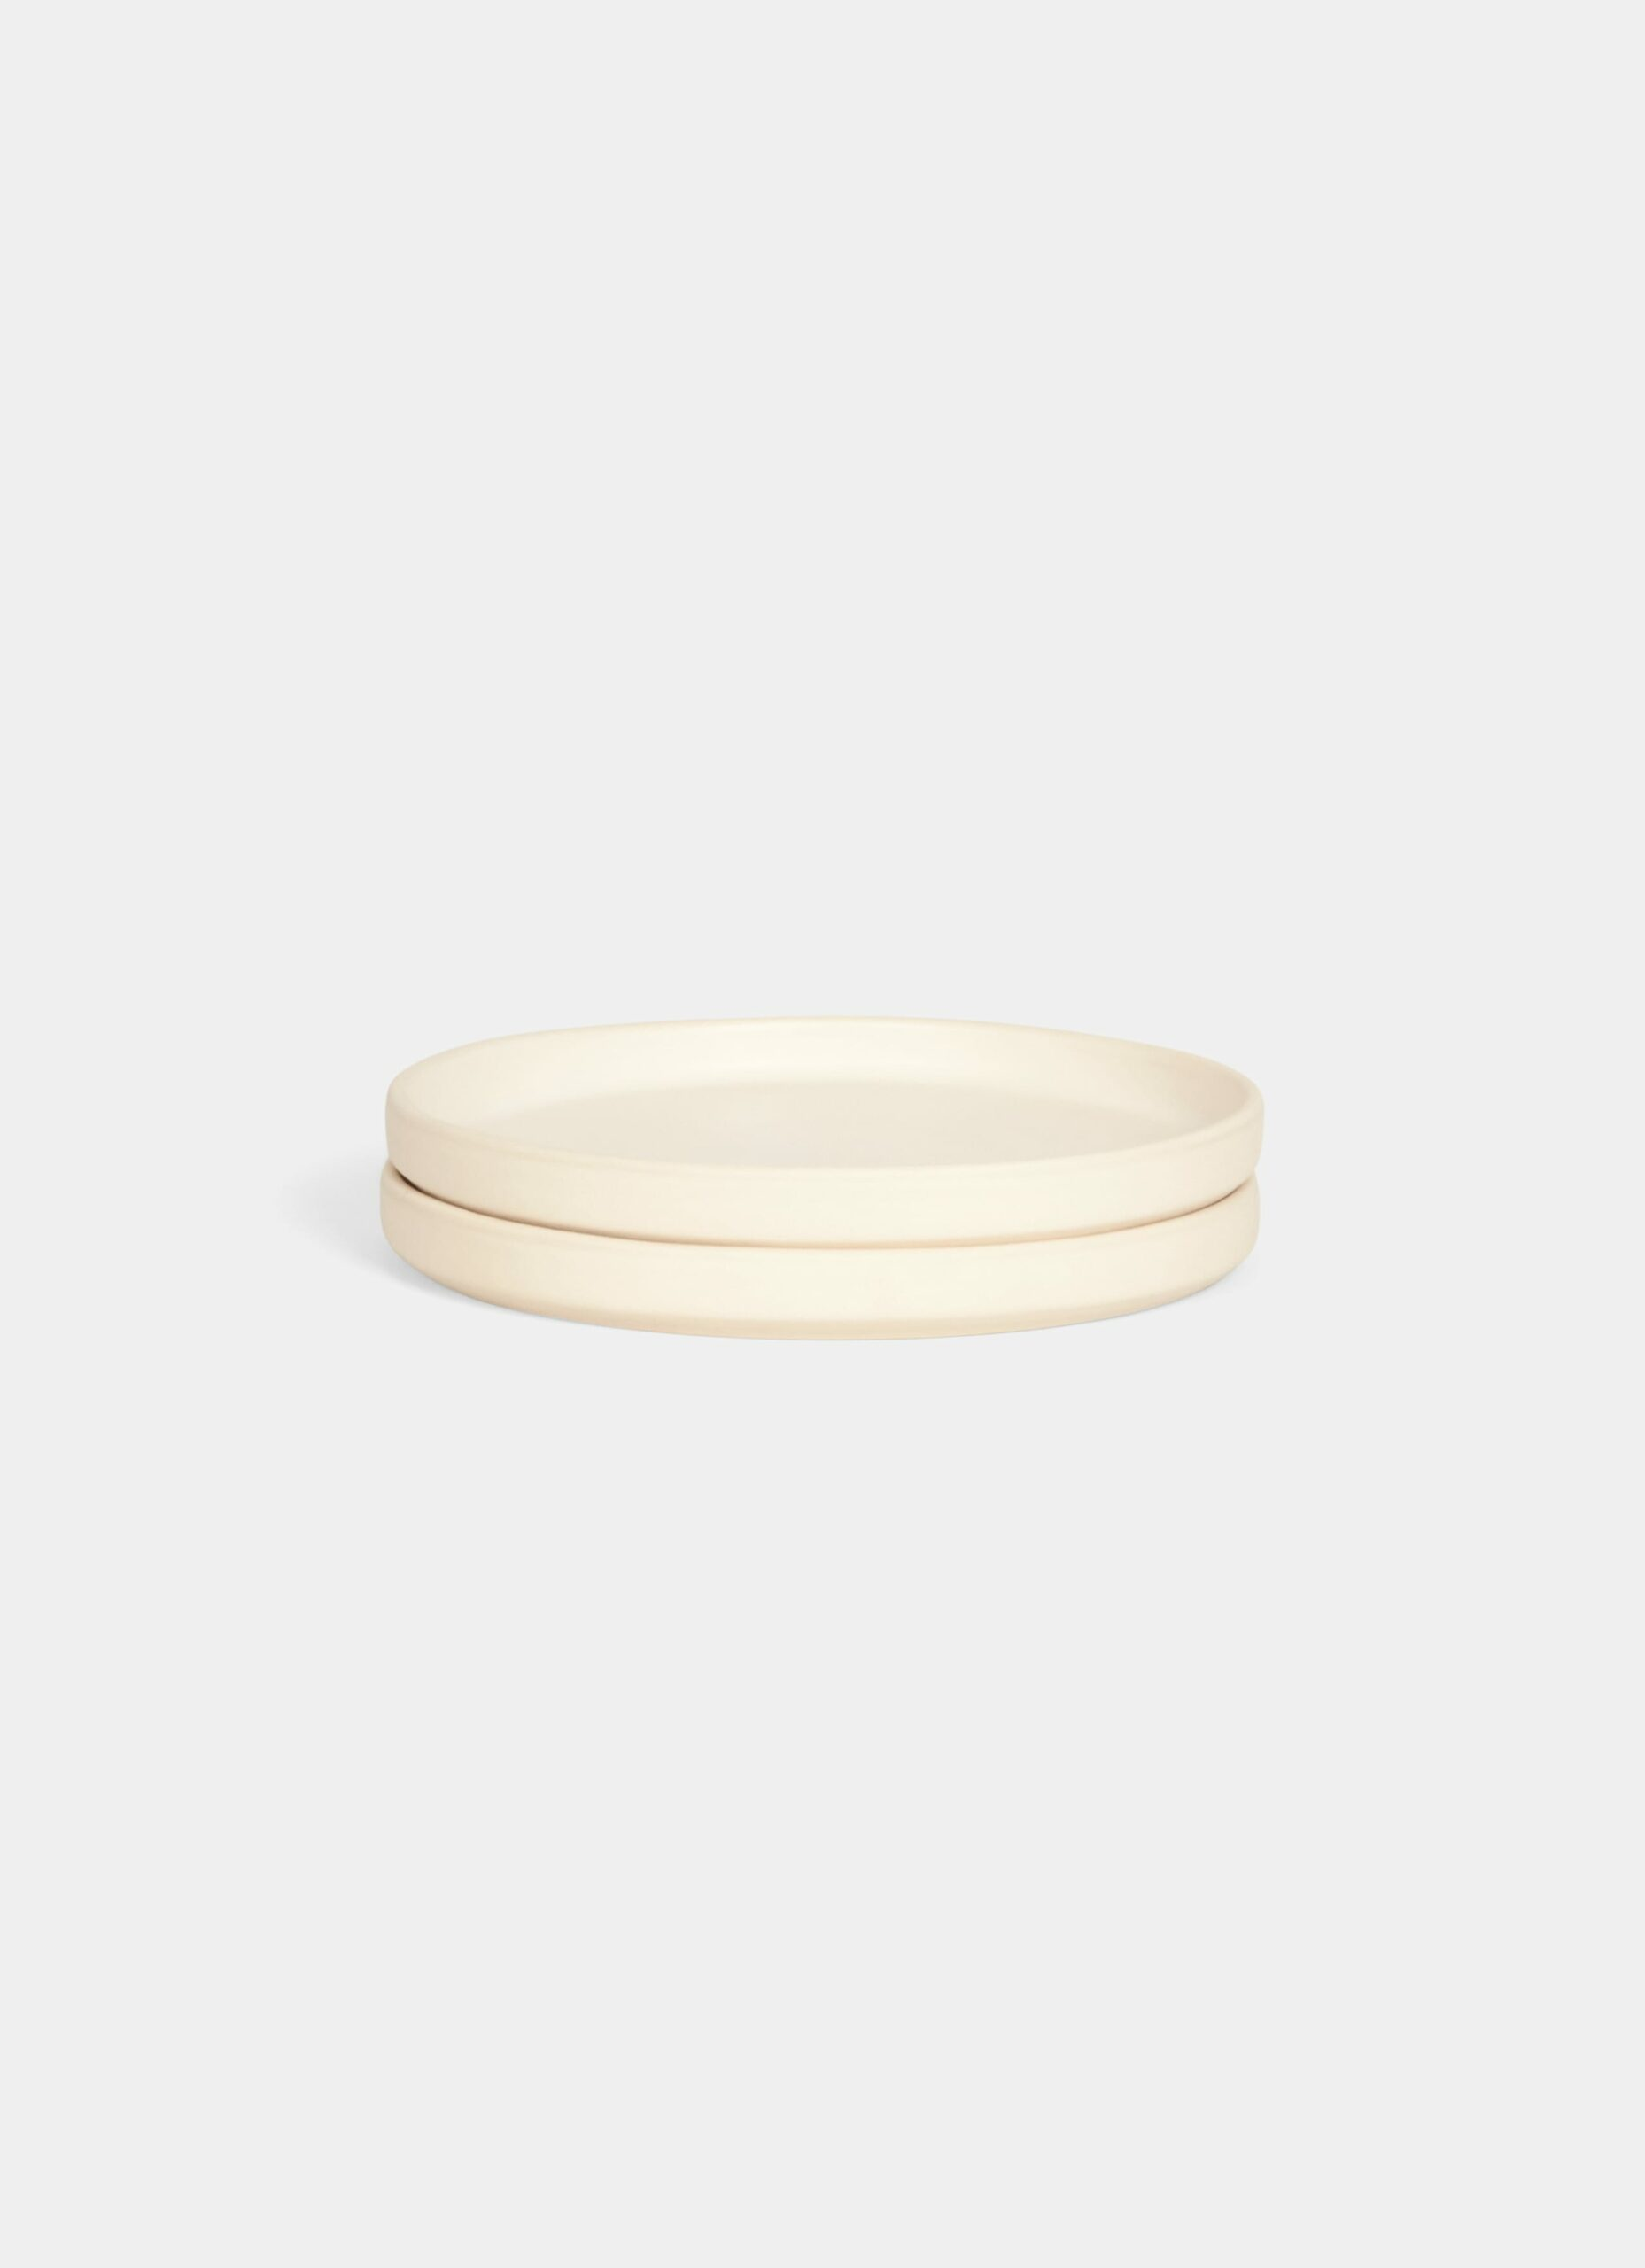 Frama - Otto Stoneware Plate - Natural - Set of Two - S